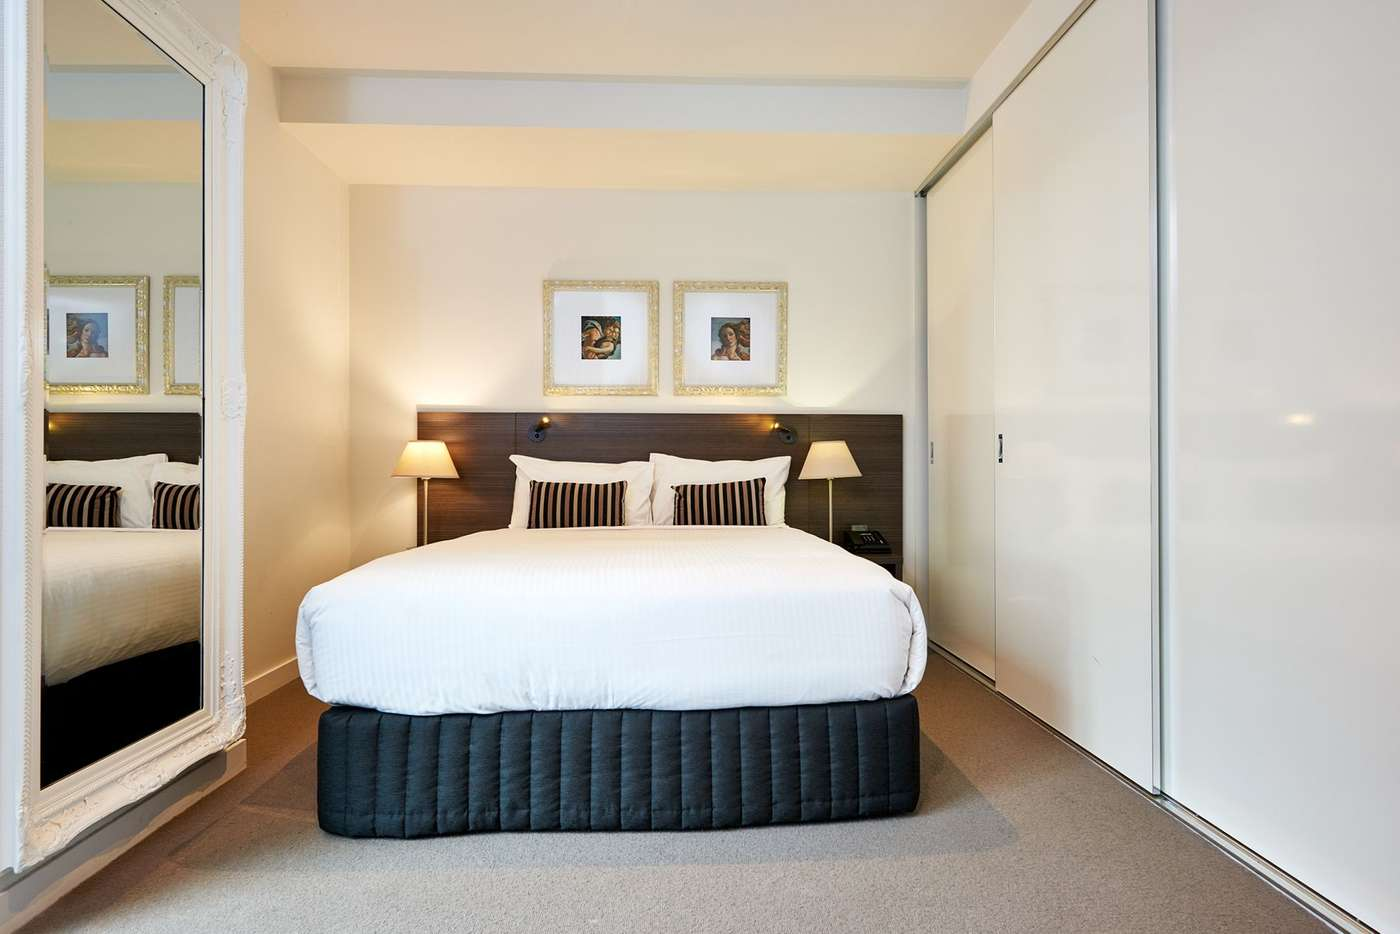 Sixth view of Homely apartment listing, 1504/133 City Road, Southbank VIC 3006